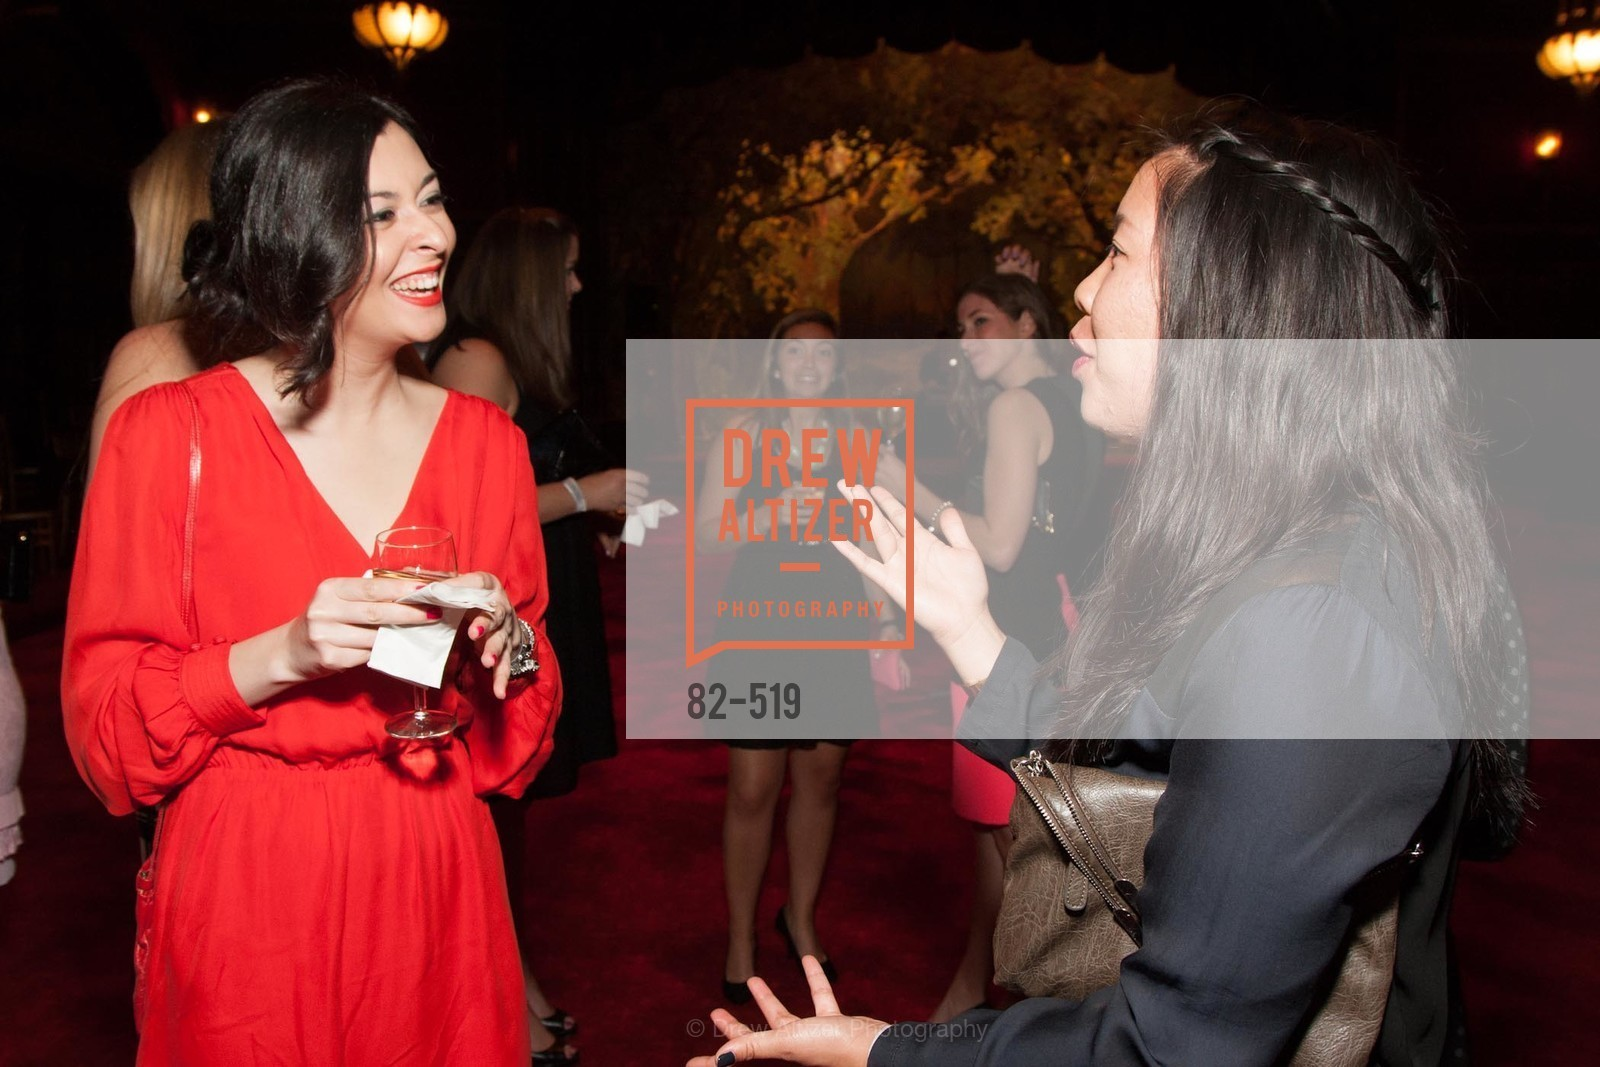 Sahar Waziri, Spinsters of San Francisco Presents: 2014 Patrons Reception Honoring Lori Shigekane, US. US, April 12th, 2014,Drew Altizer, Drew Altizer Photography, full-service agency, private events, San Francisco photographer, photographer california